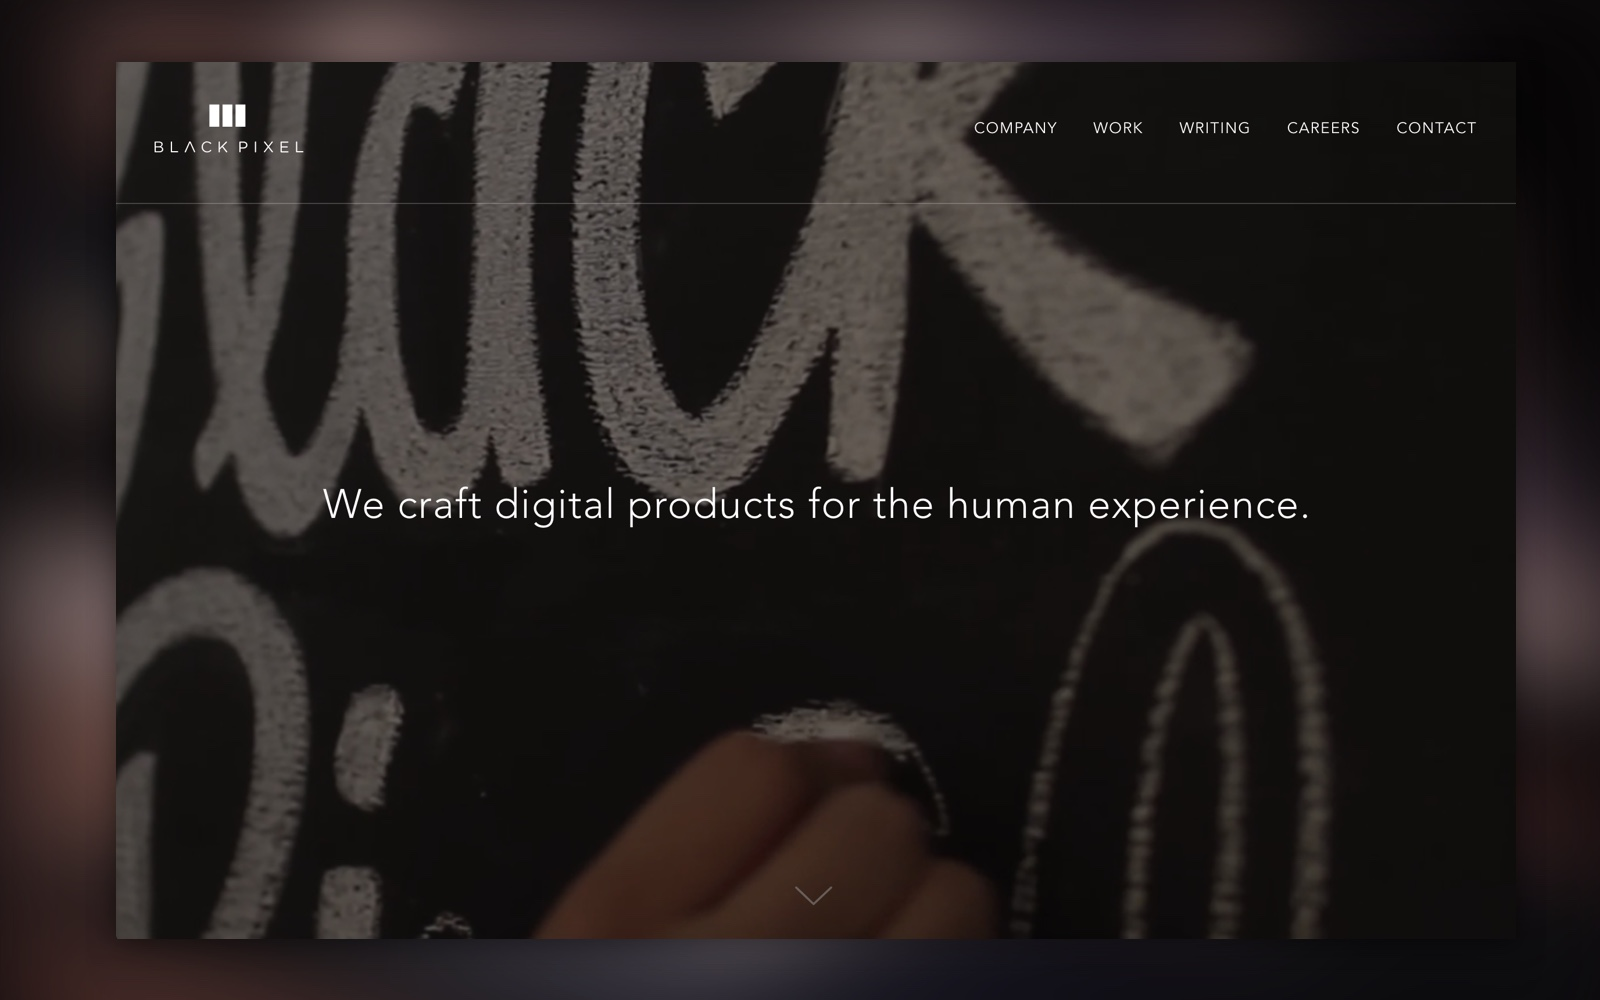 A simple clean homepage married motion with a simple message